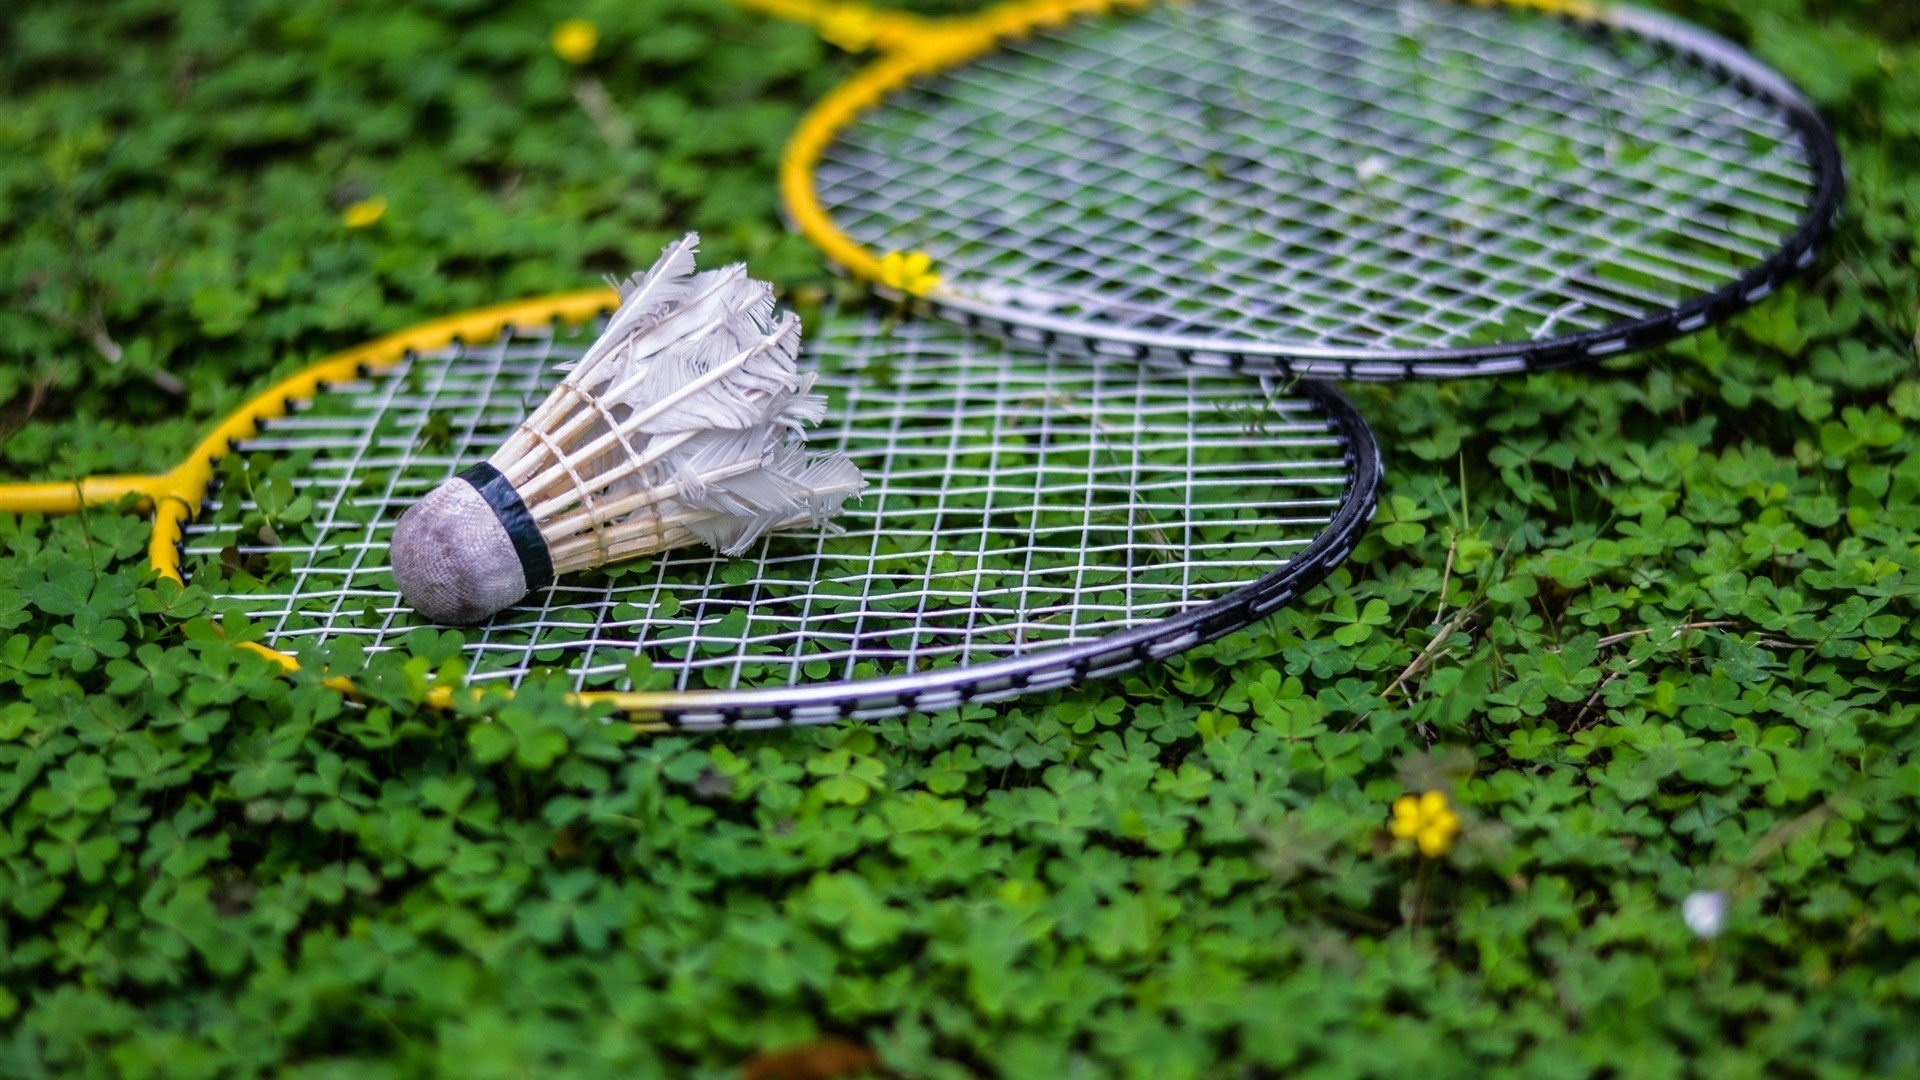 Badminton Wallpaper Picture hd